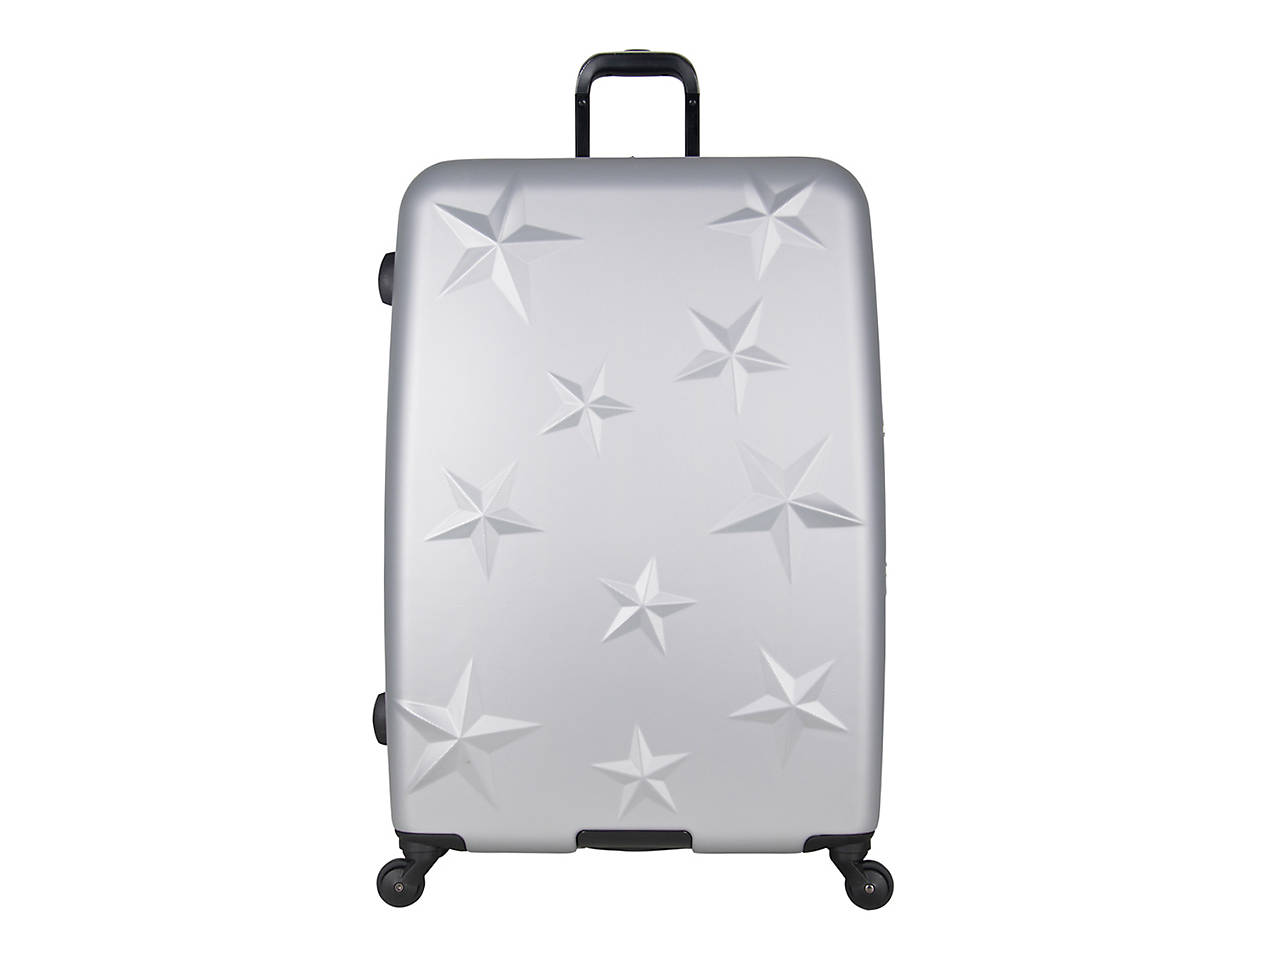 c5e98fdeb Aimee Kestenberg - Luggage. Star Molded 28-Inch Checked Hard Shell Luggage